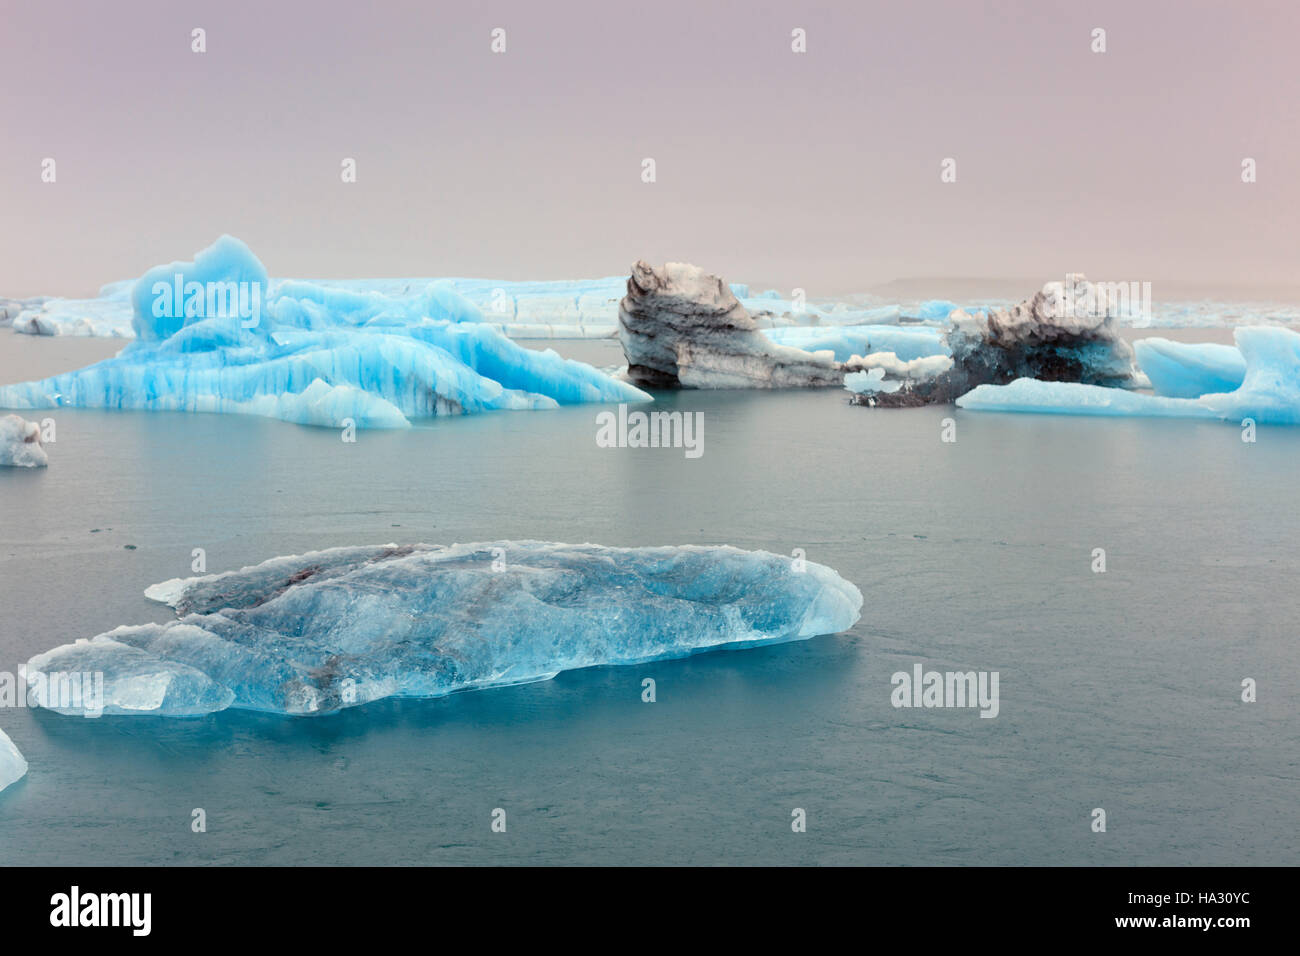 Icebergs in Jokulsarlon, a glacial lake in southeast Iceland, on the edge of Vatnajokull National Park Stock Photo